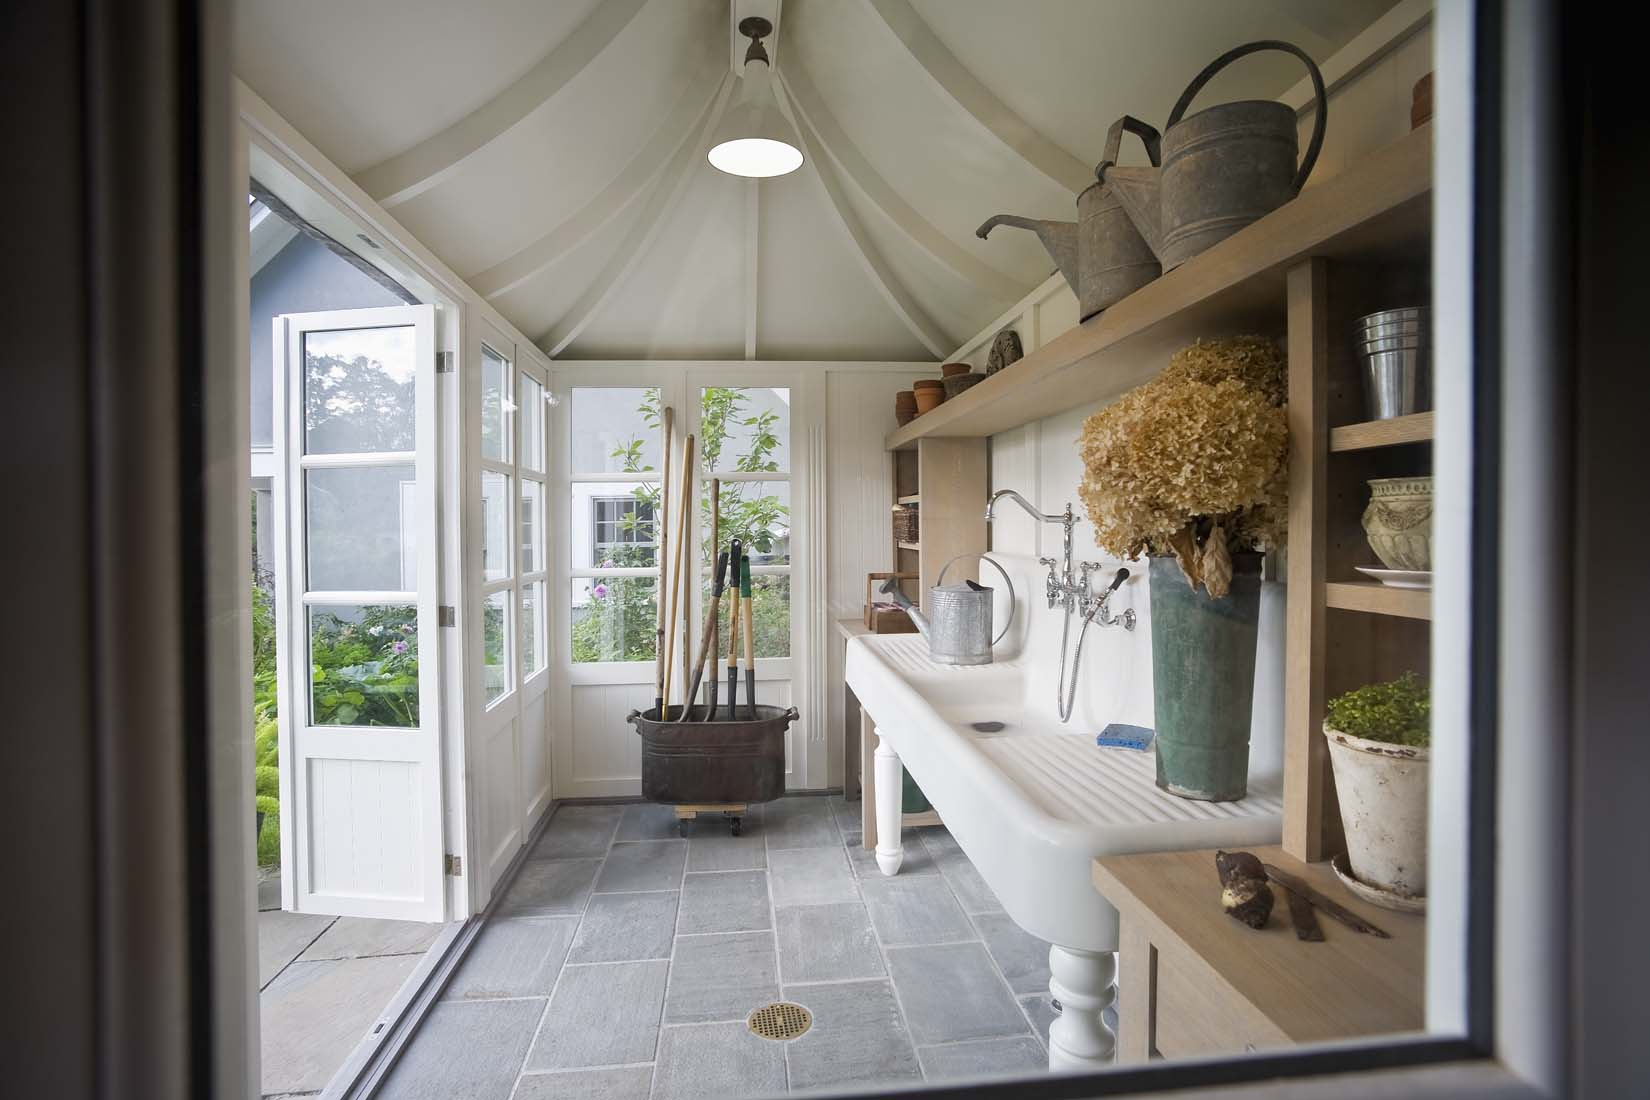 Interior Of Garden Shed With Large Utilitiy Sink, Stone Floor And Doors  Open To Garden